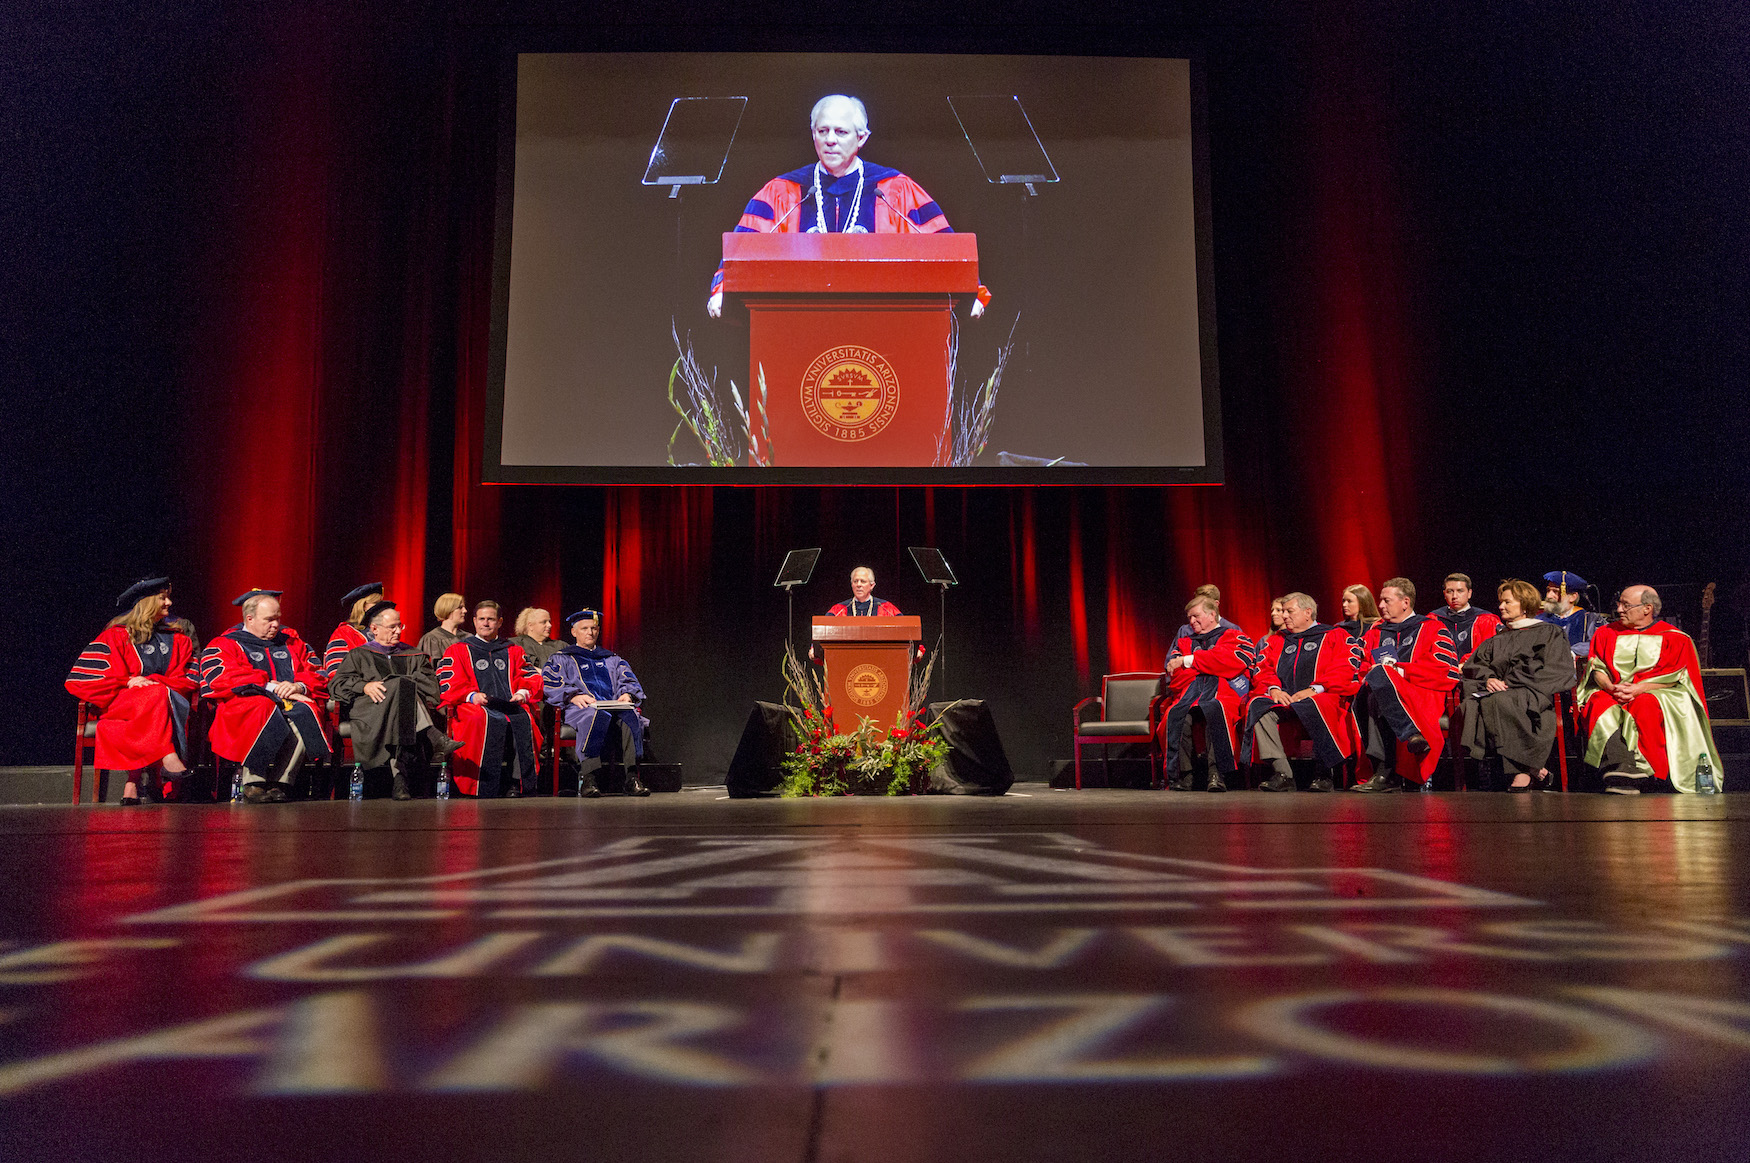 Dr. Robbins gives his Installation address